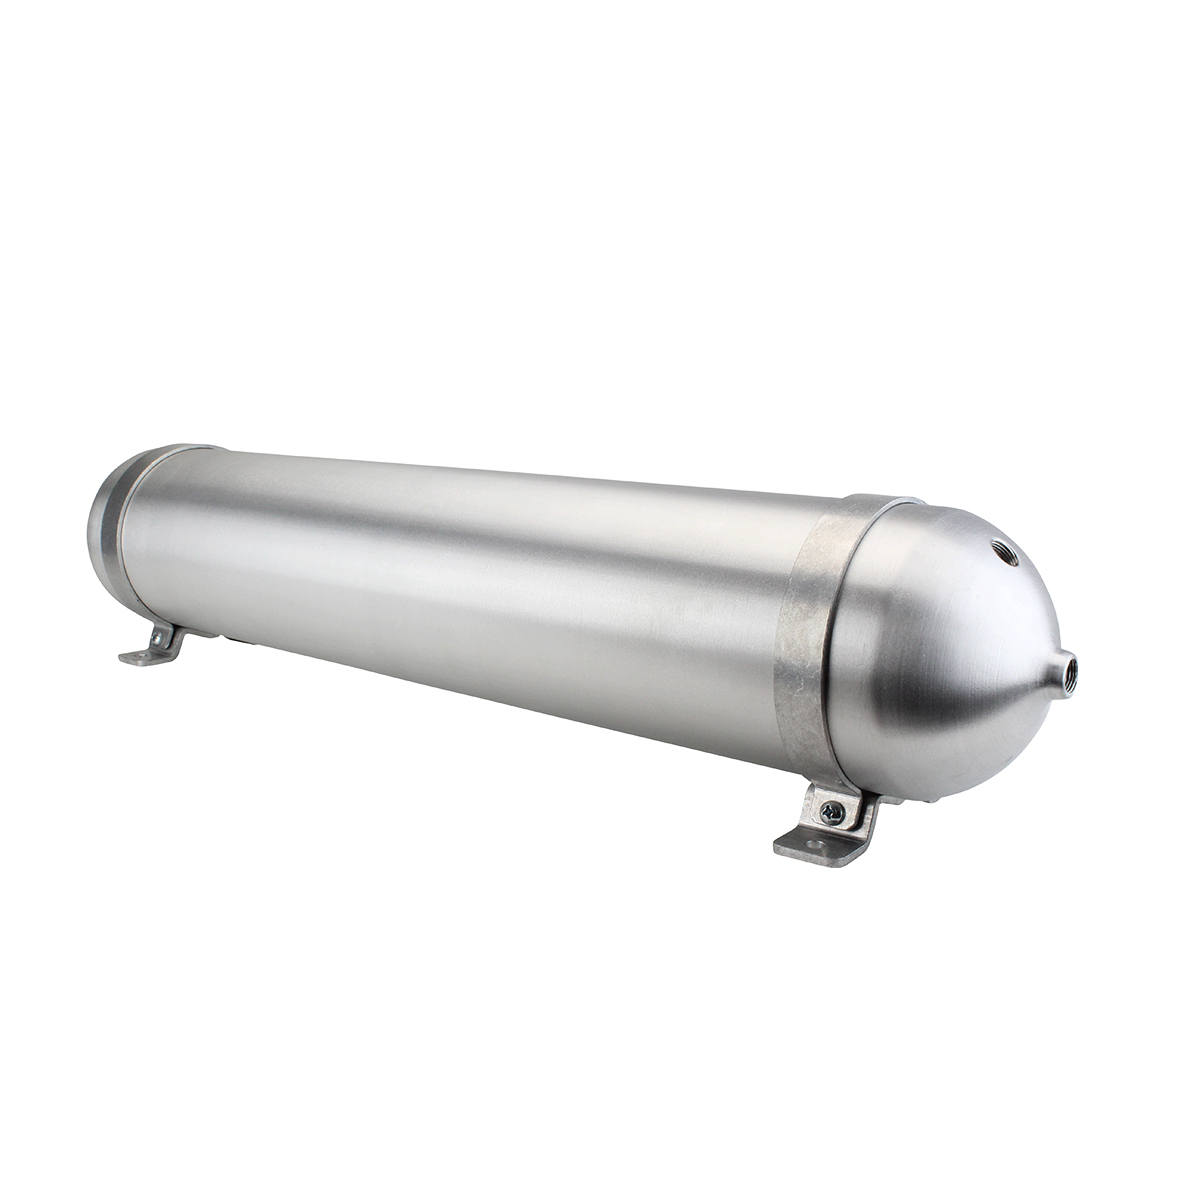 "SA532038-01 Seamless Tanks Aluminum Air Tank 32"" Length 5.562"" Diameter (4) 3/8"" Ports (1) 1/4"" Port, 200psi Rated, Actual Volume 2.81 Gallons"